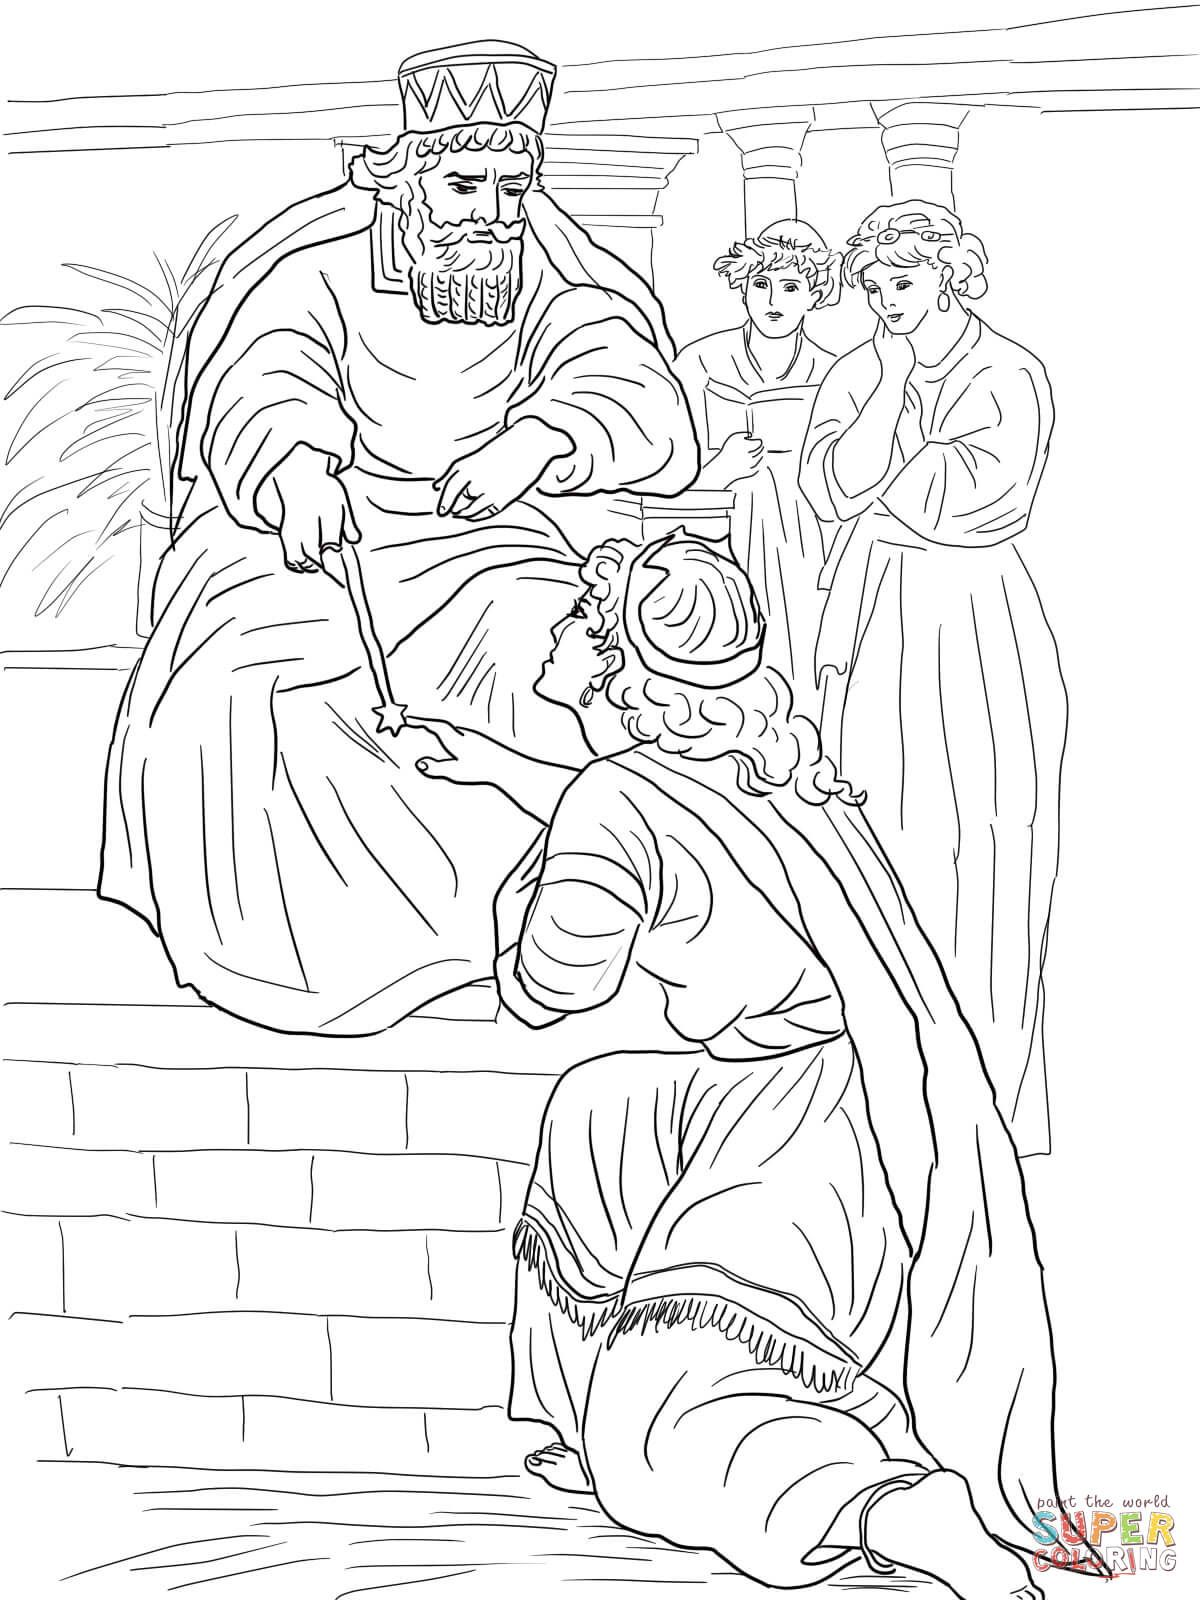 esther before king ahasuerus coloring page from queen esther category select from 27237 printable crafts of cartoons nature animals bible and many more - Coloring Pages Esther Queen Bible